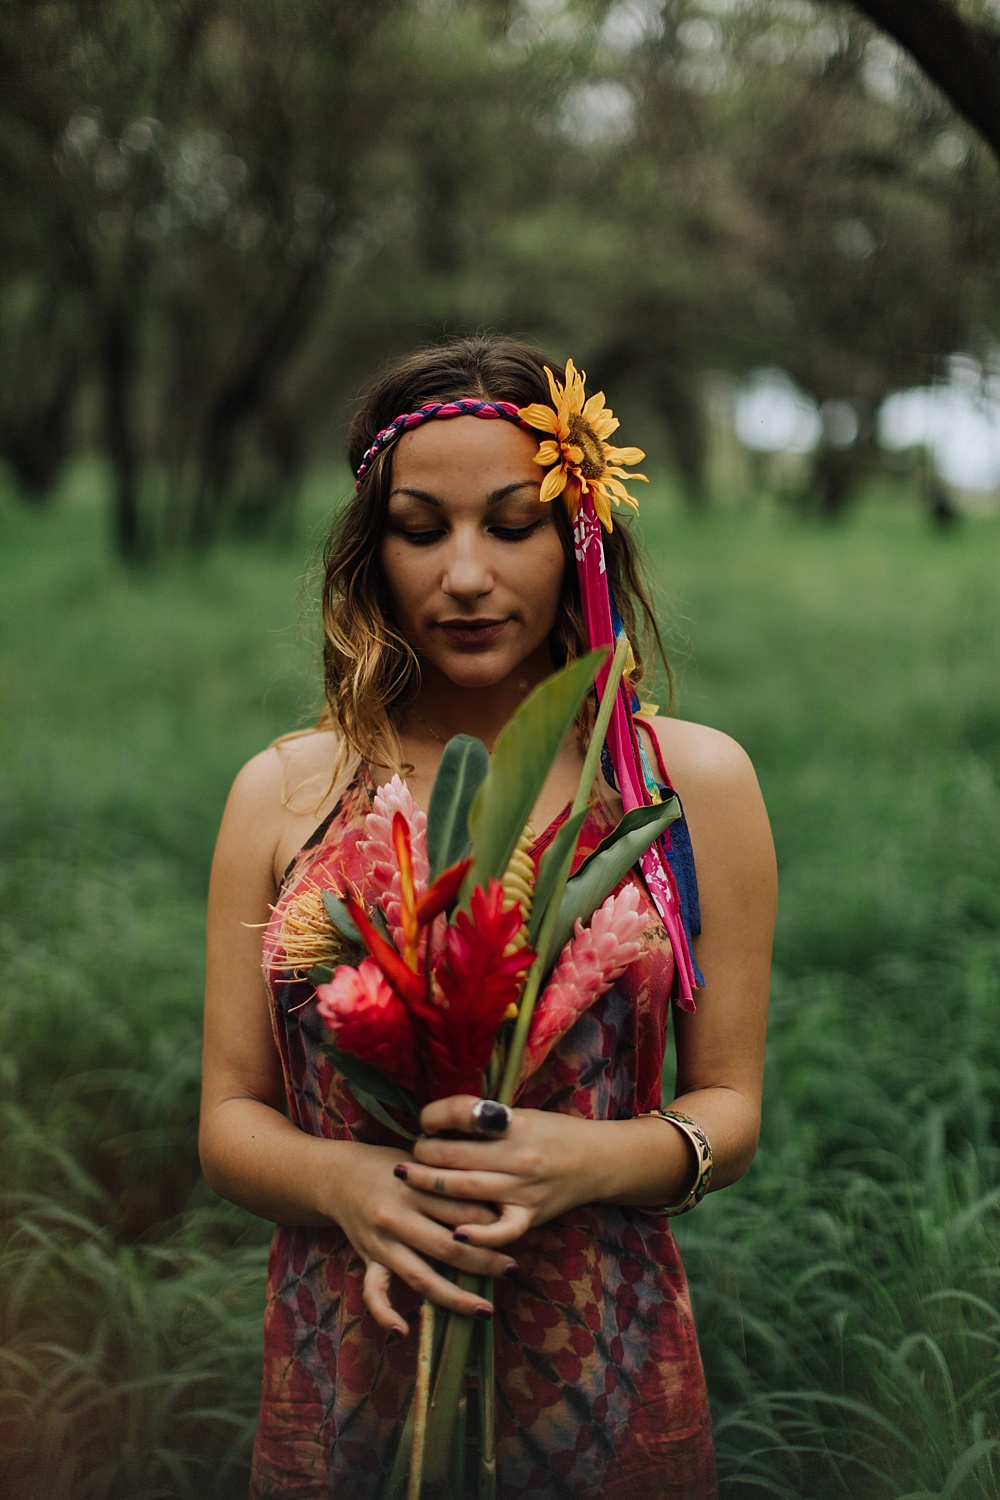 gypsy halos - rainbow hippie village wedding in maui, hawaii.